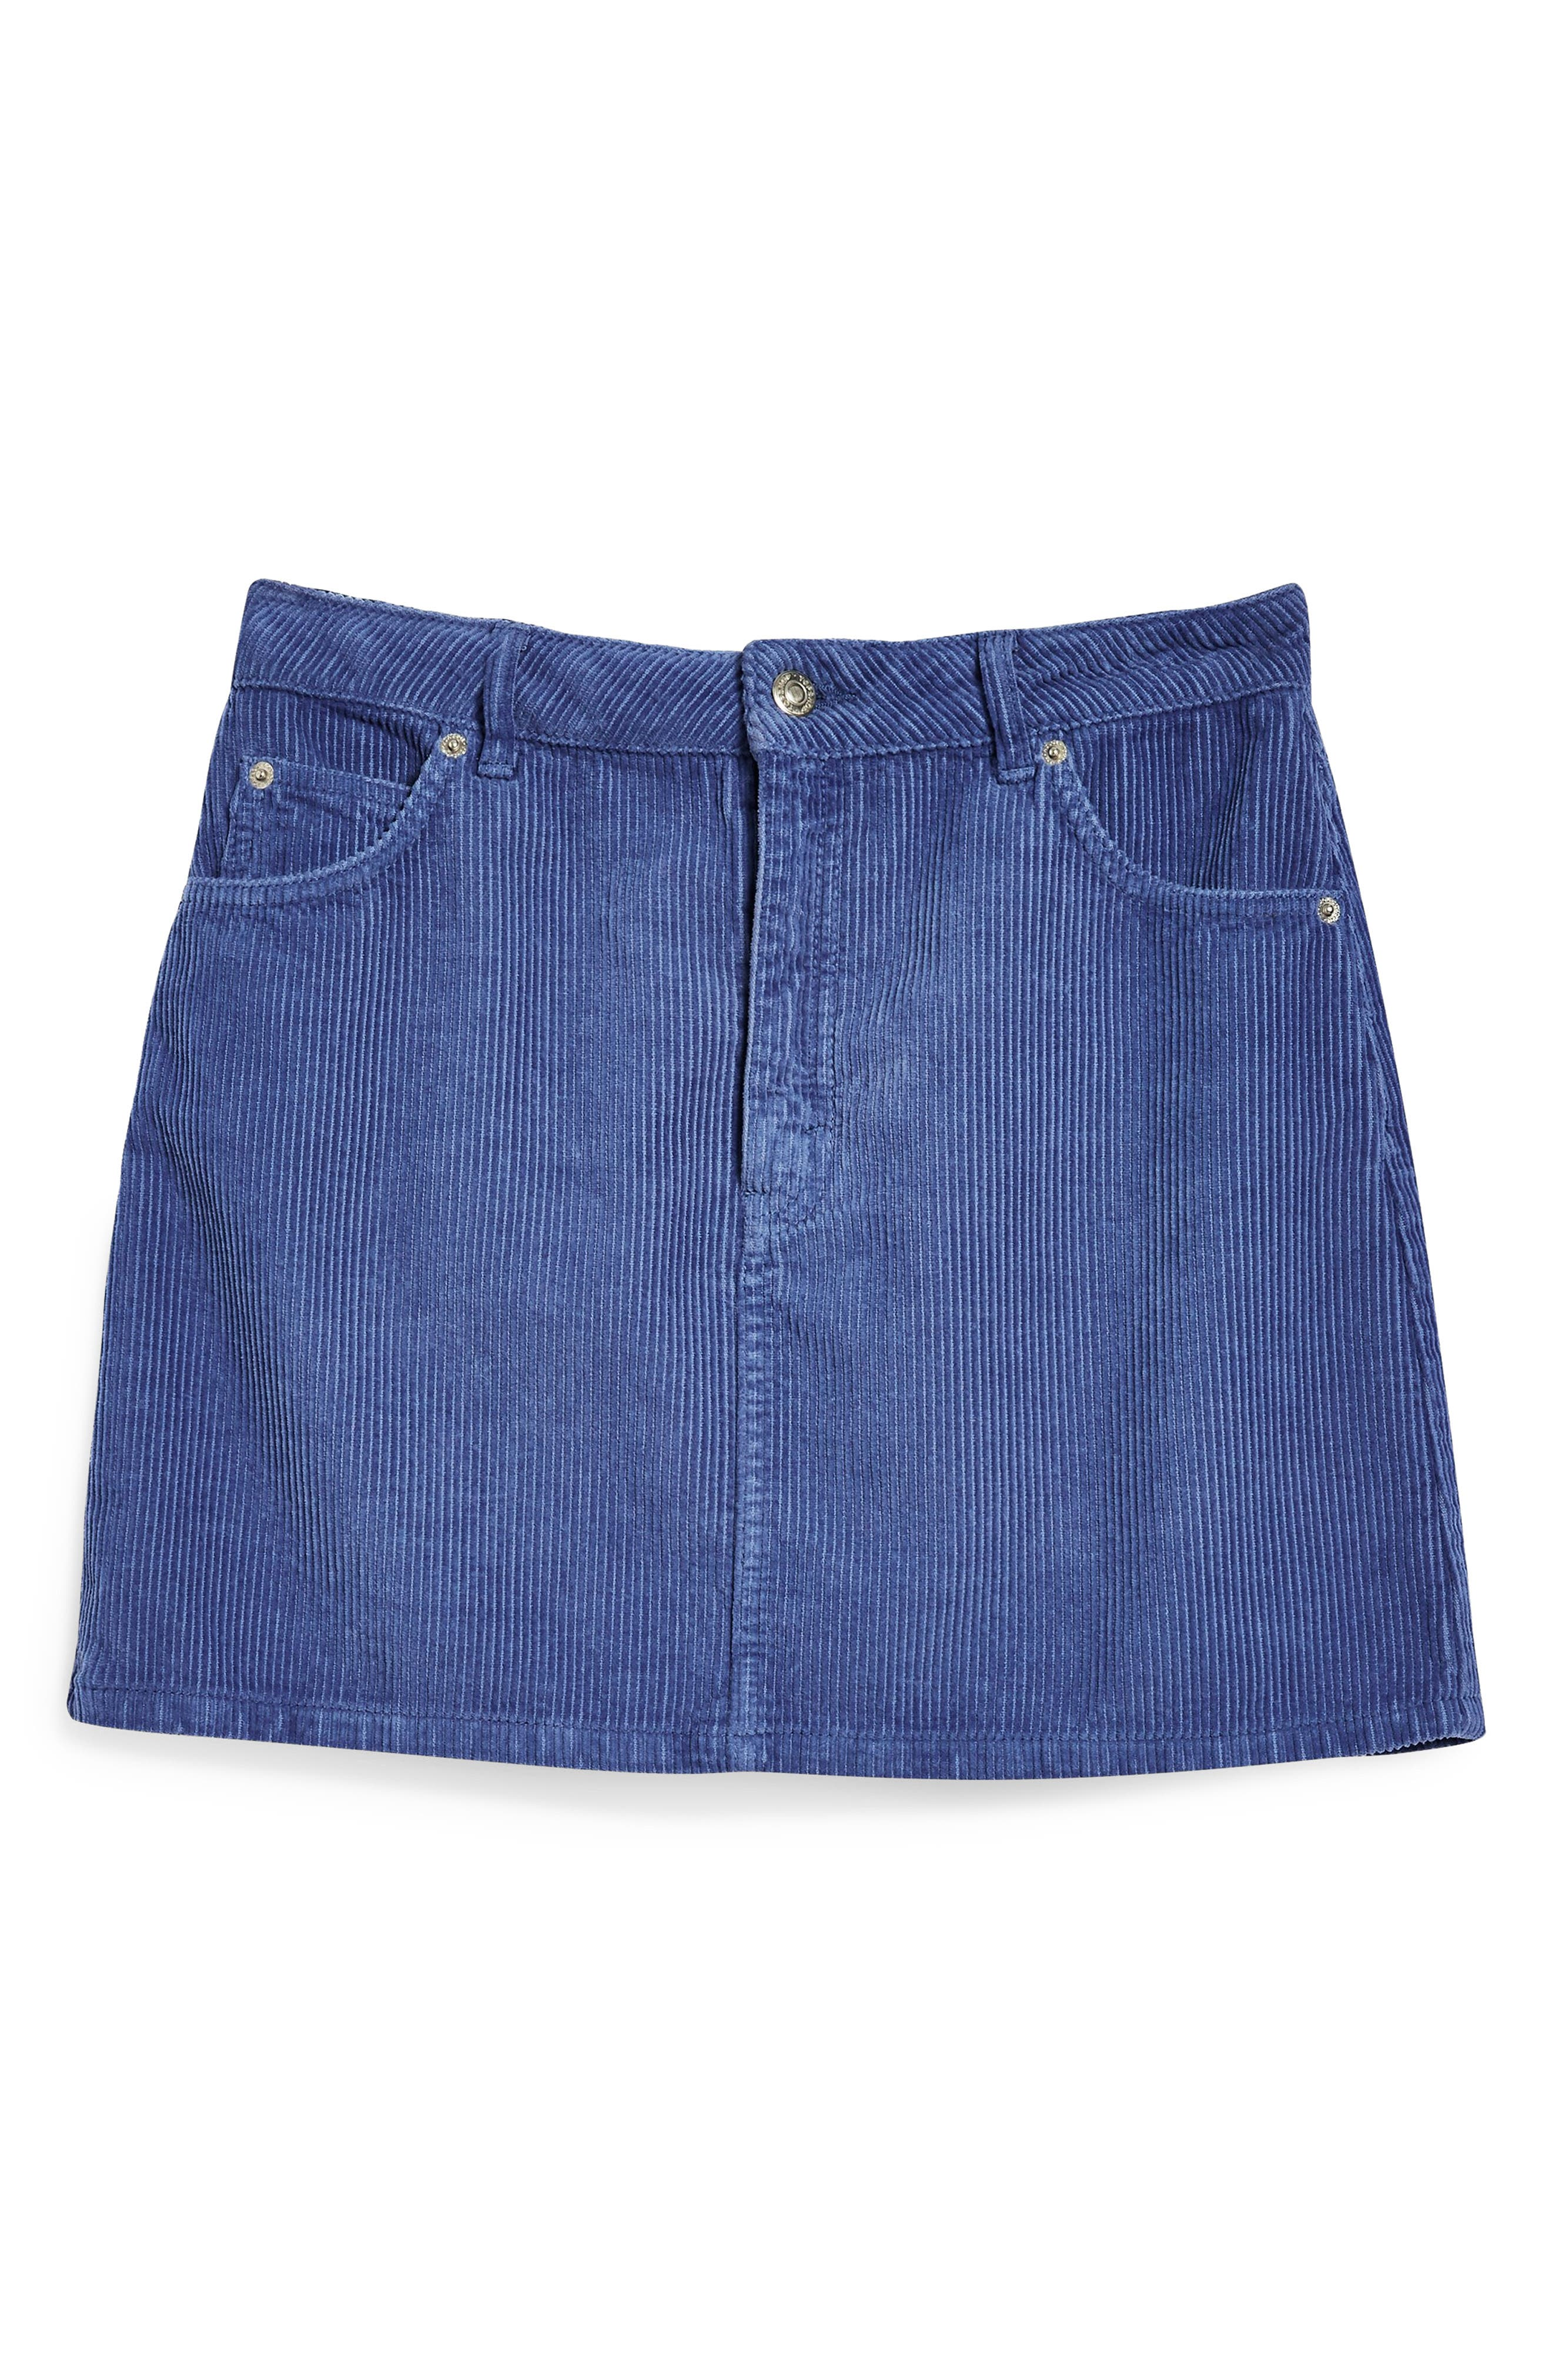 TOPSHOP,                             Corduroy Skirt,                             Alternate thumbnail 4, color,                             LIGHT BLUE